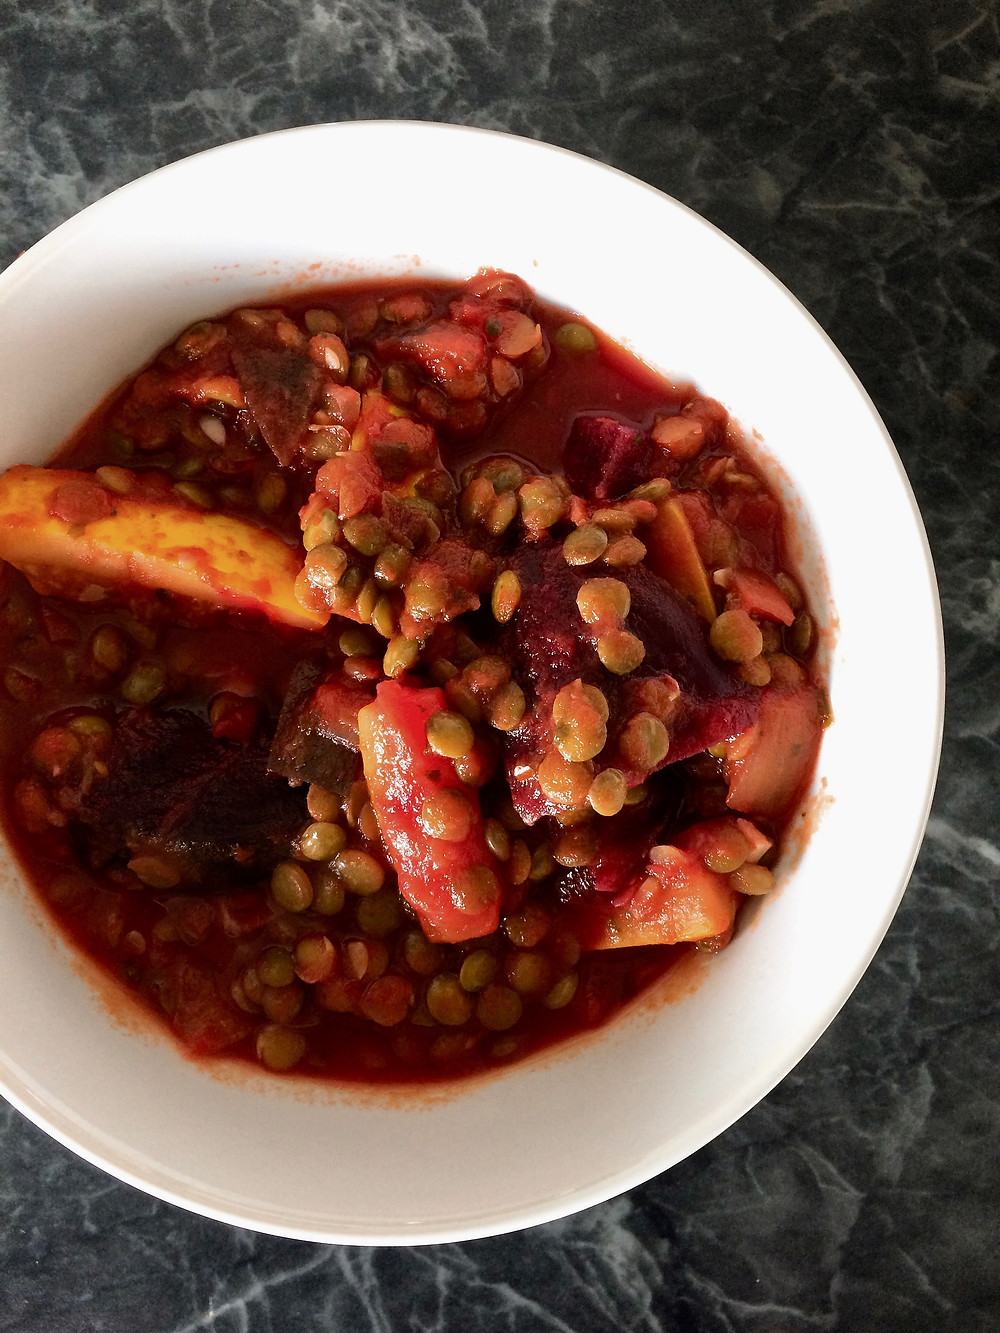 Lentil, tomato and beetroot stew